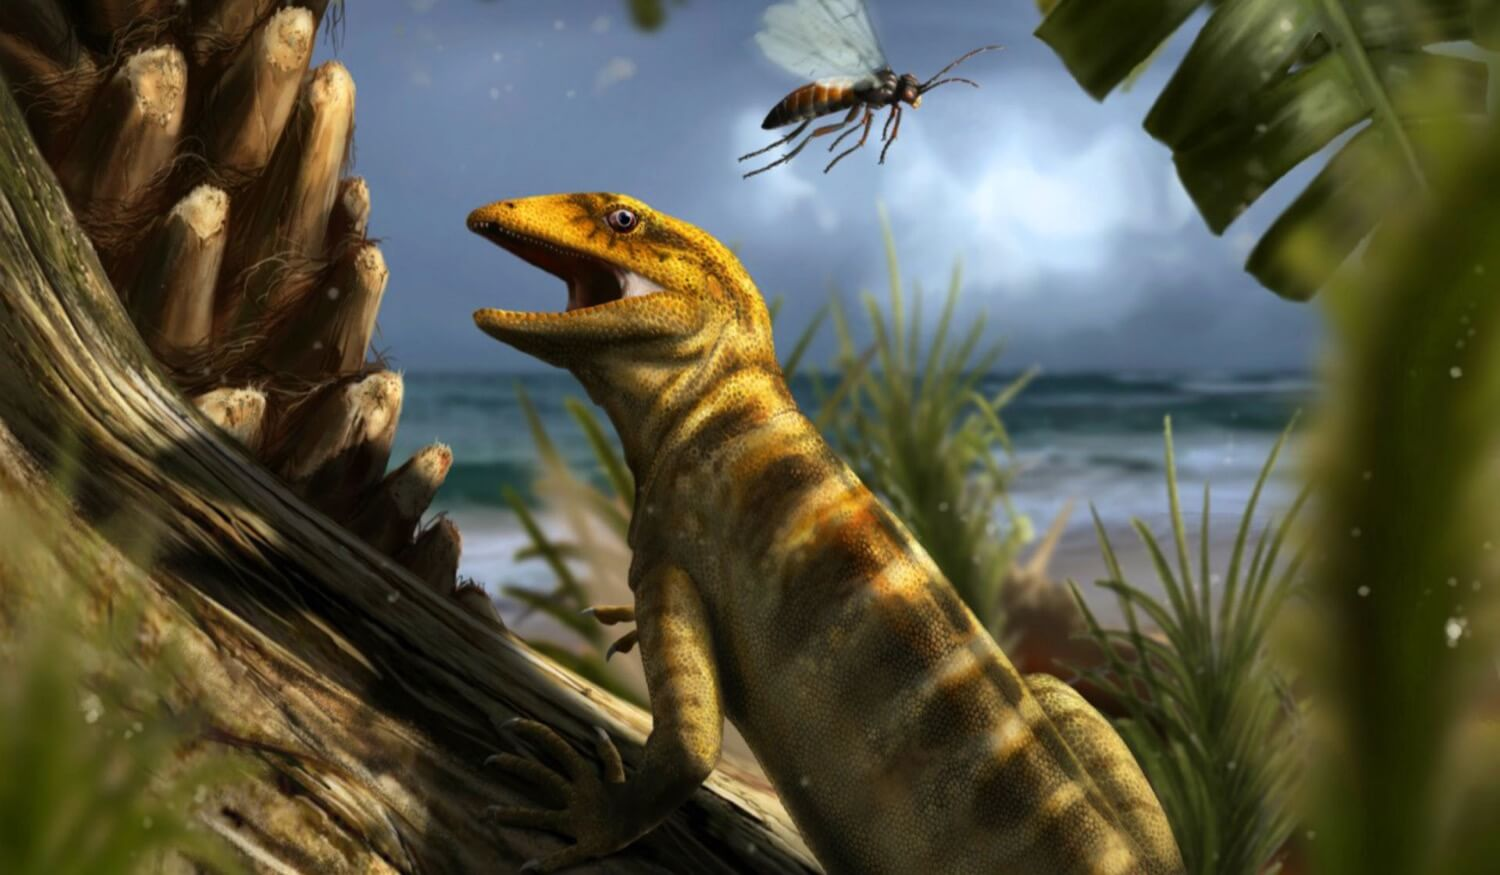 Found the first ancestor of snakes and lizards that lived 240 million years ago